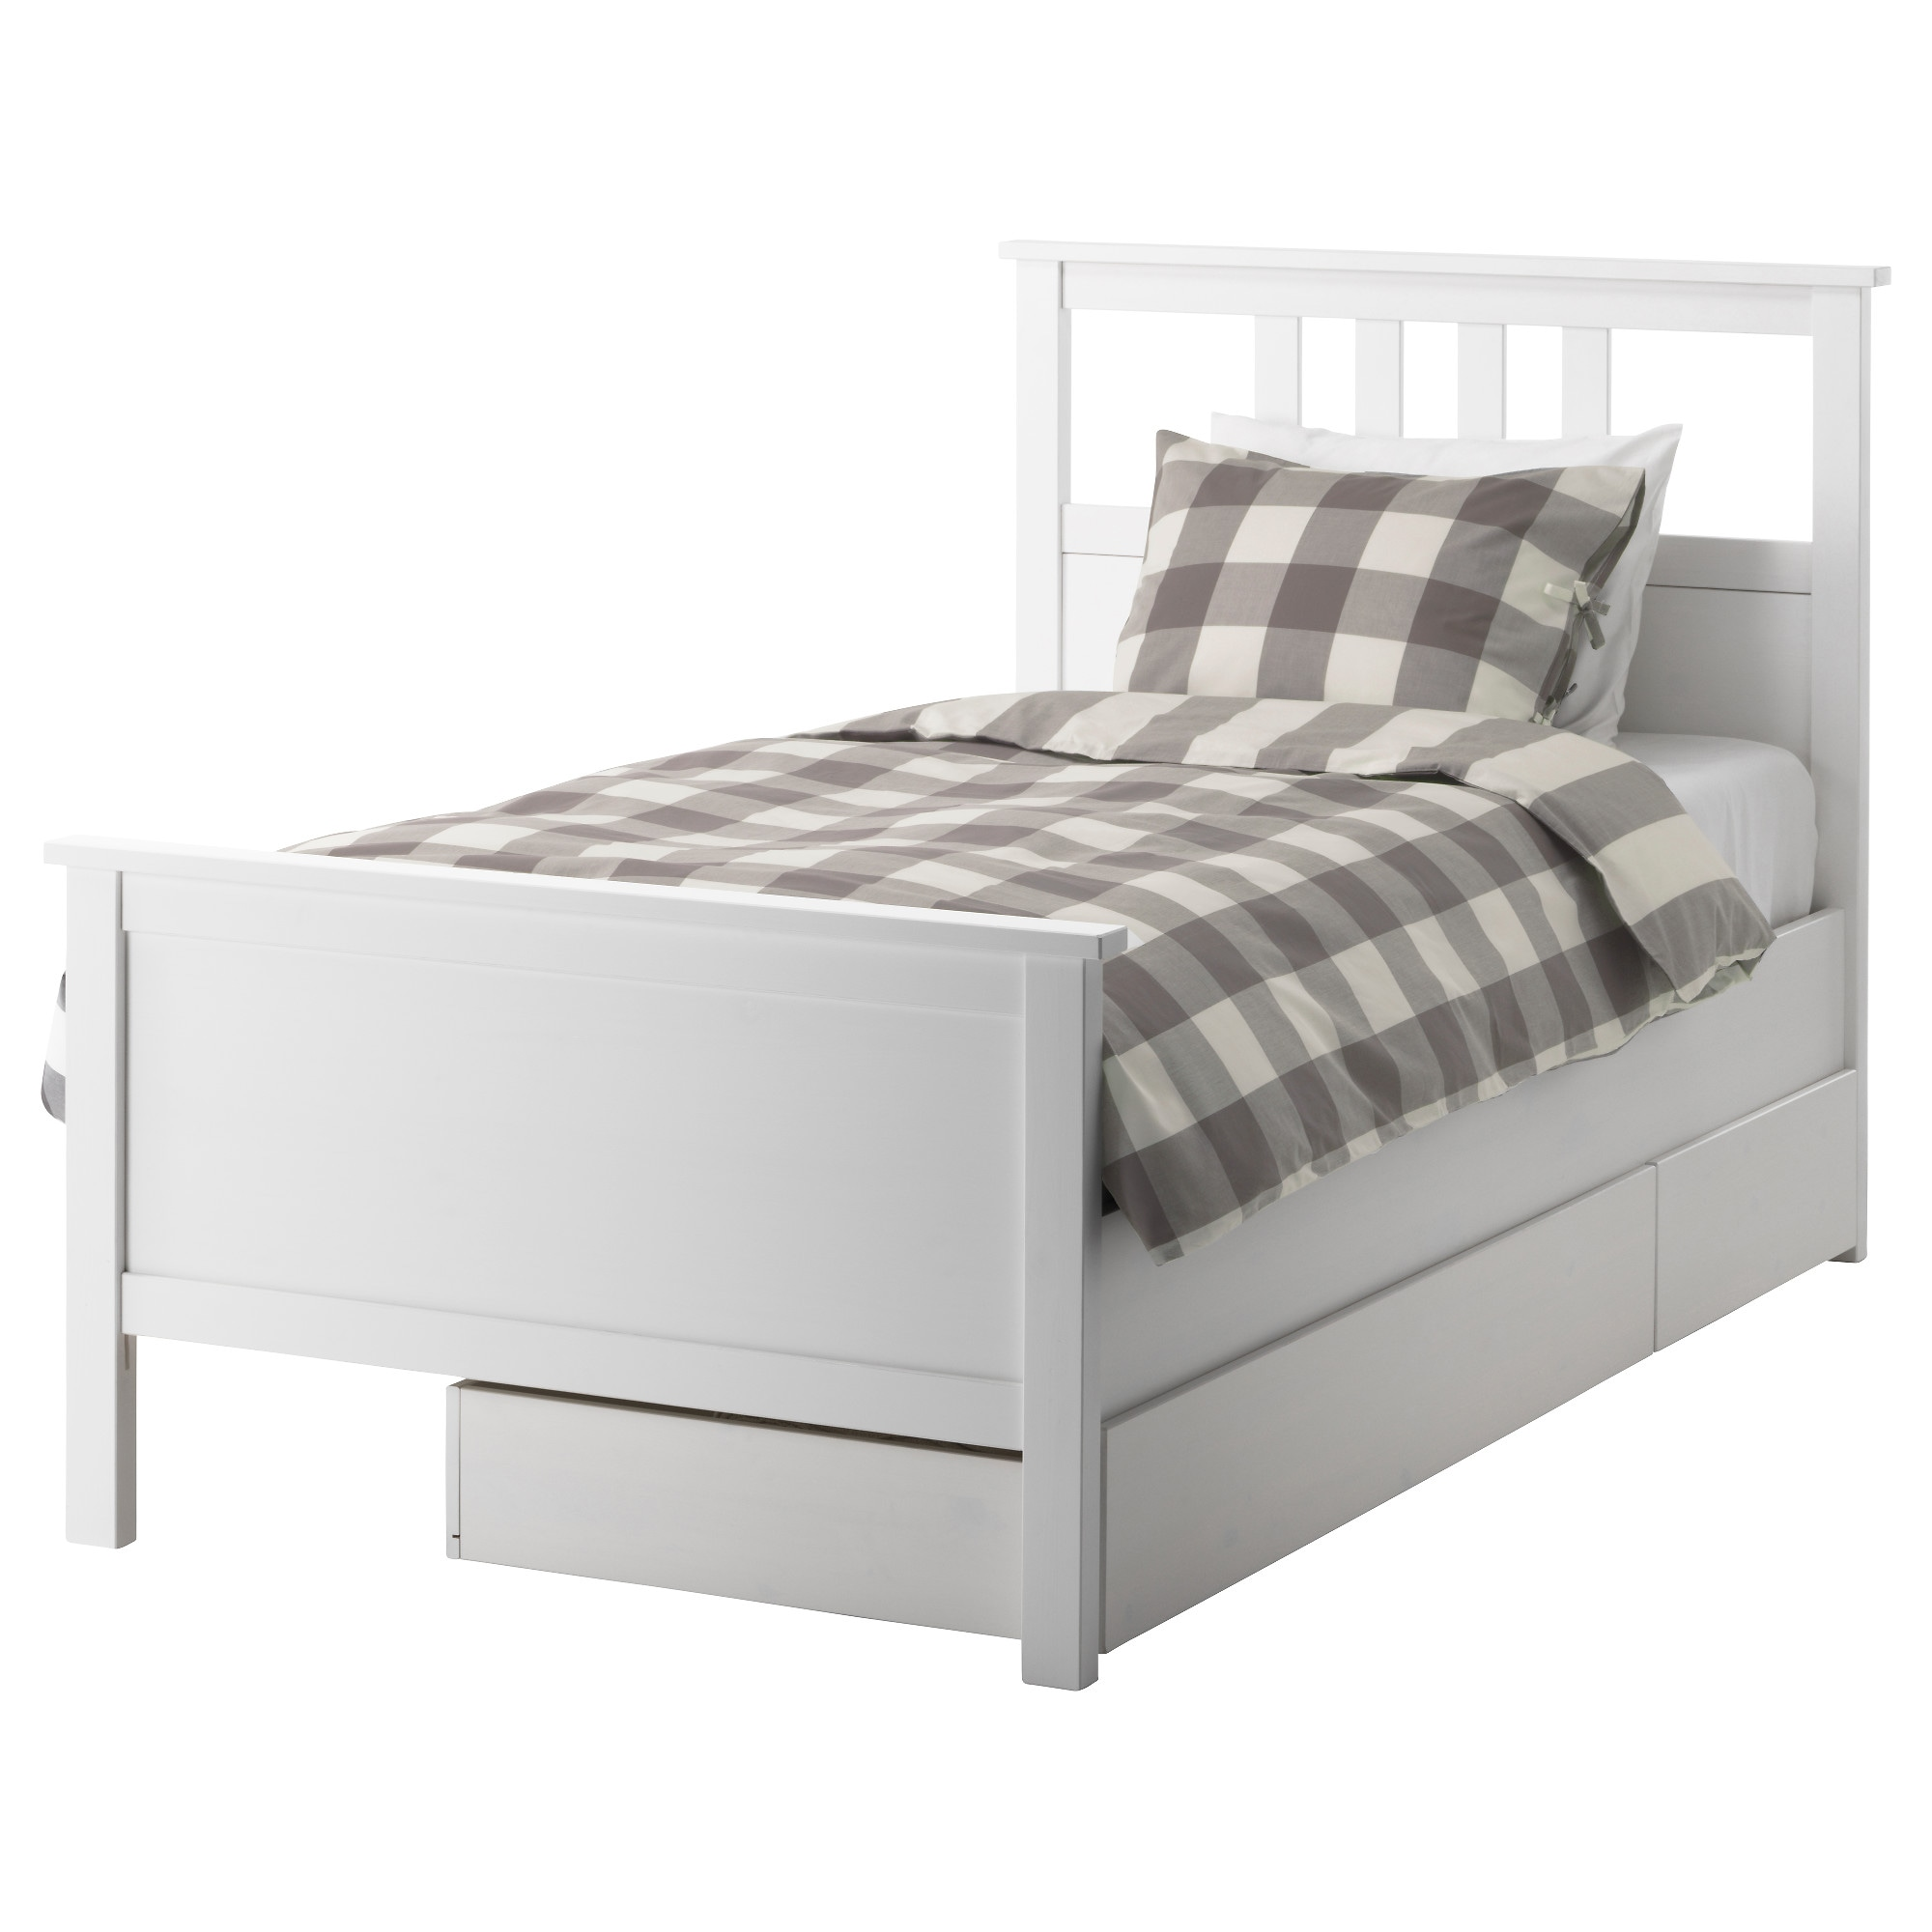 White twin bed with storage - Hemnes Bed Frame With 2 Storage Boxes White Stain Length 79 1 8